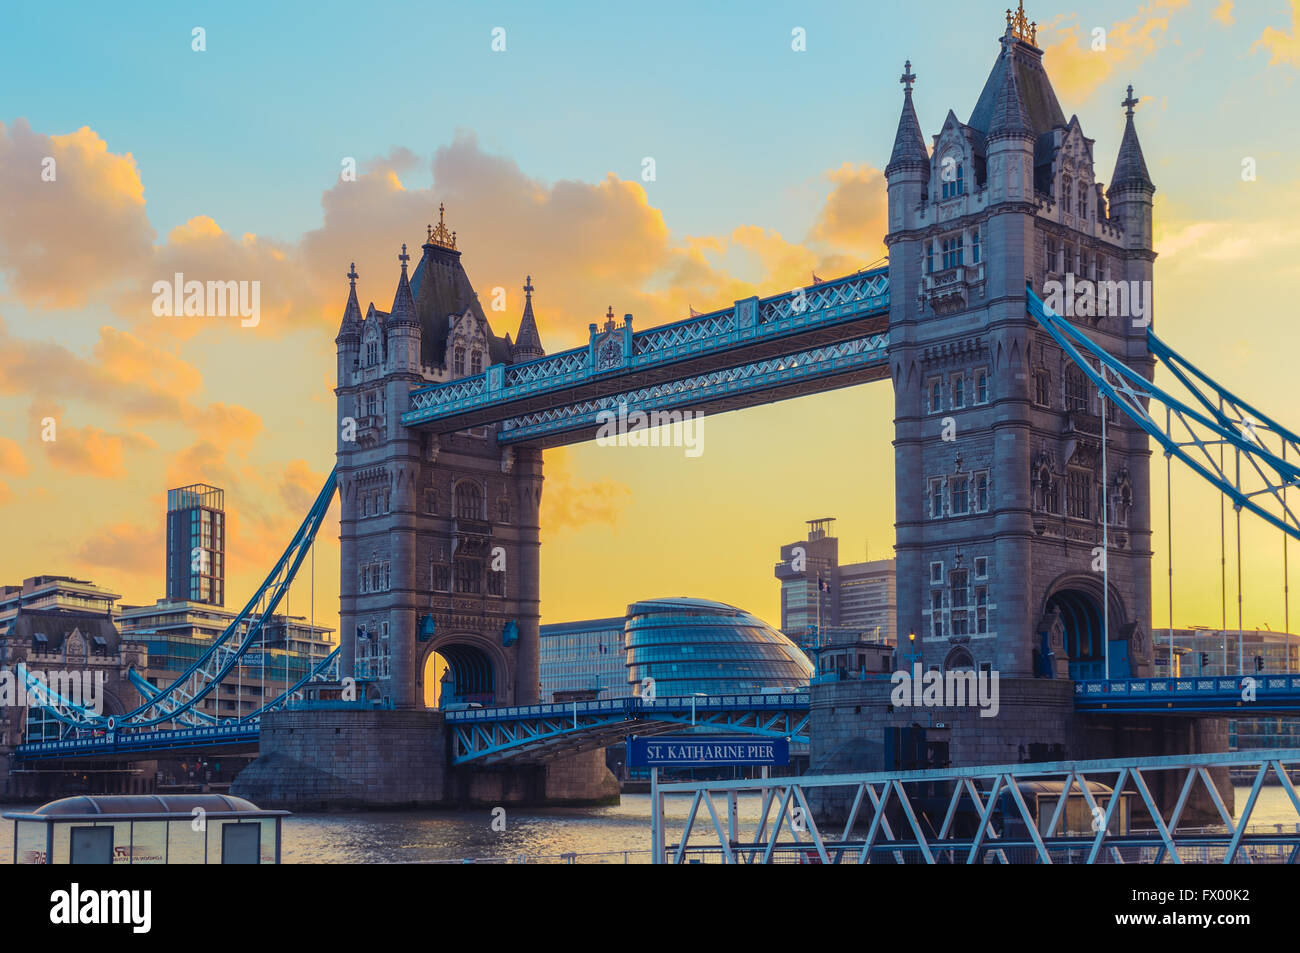 Sunset at Tower Bridge and St. Katharine Pier  in London, United Kingdom - Stock Image